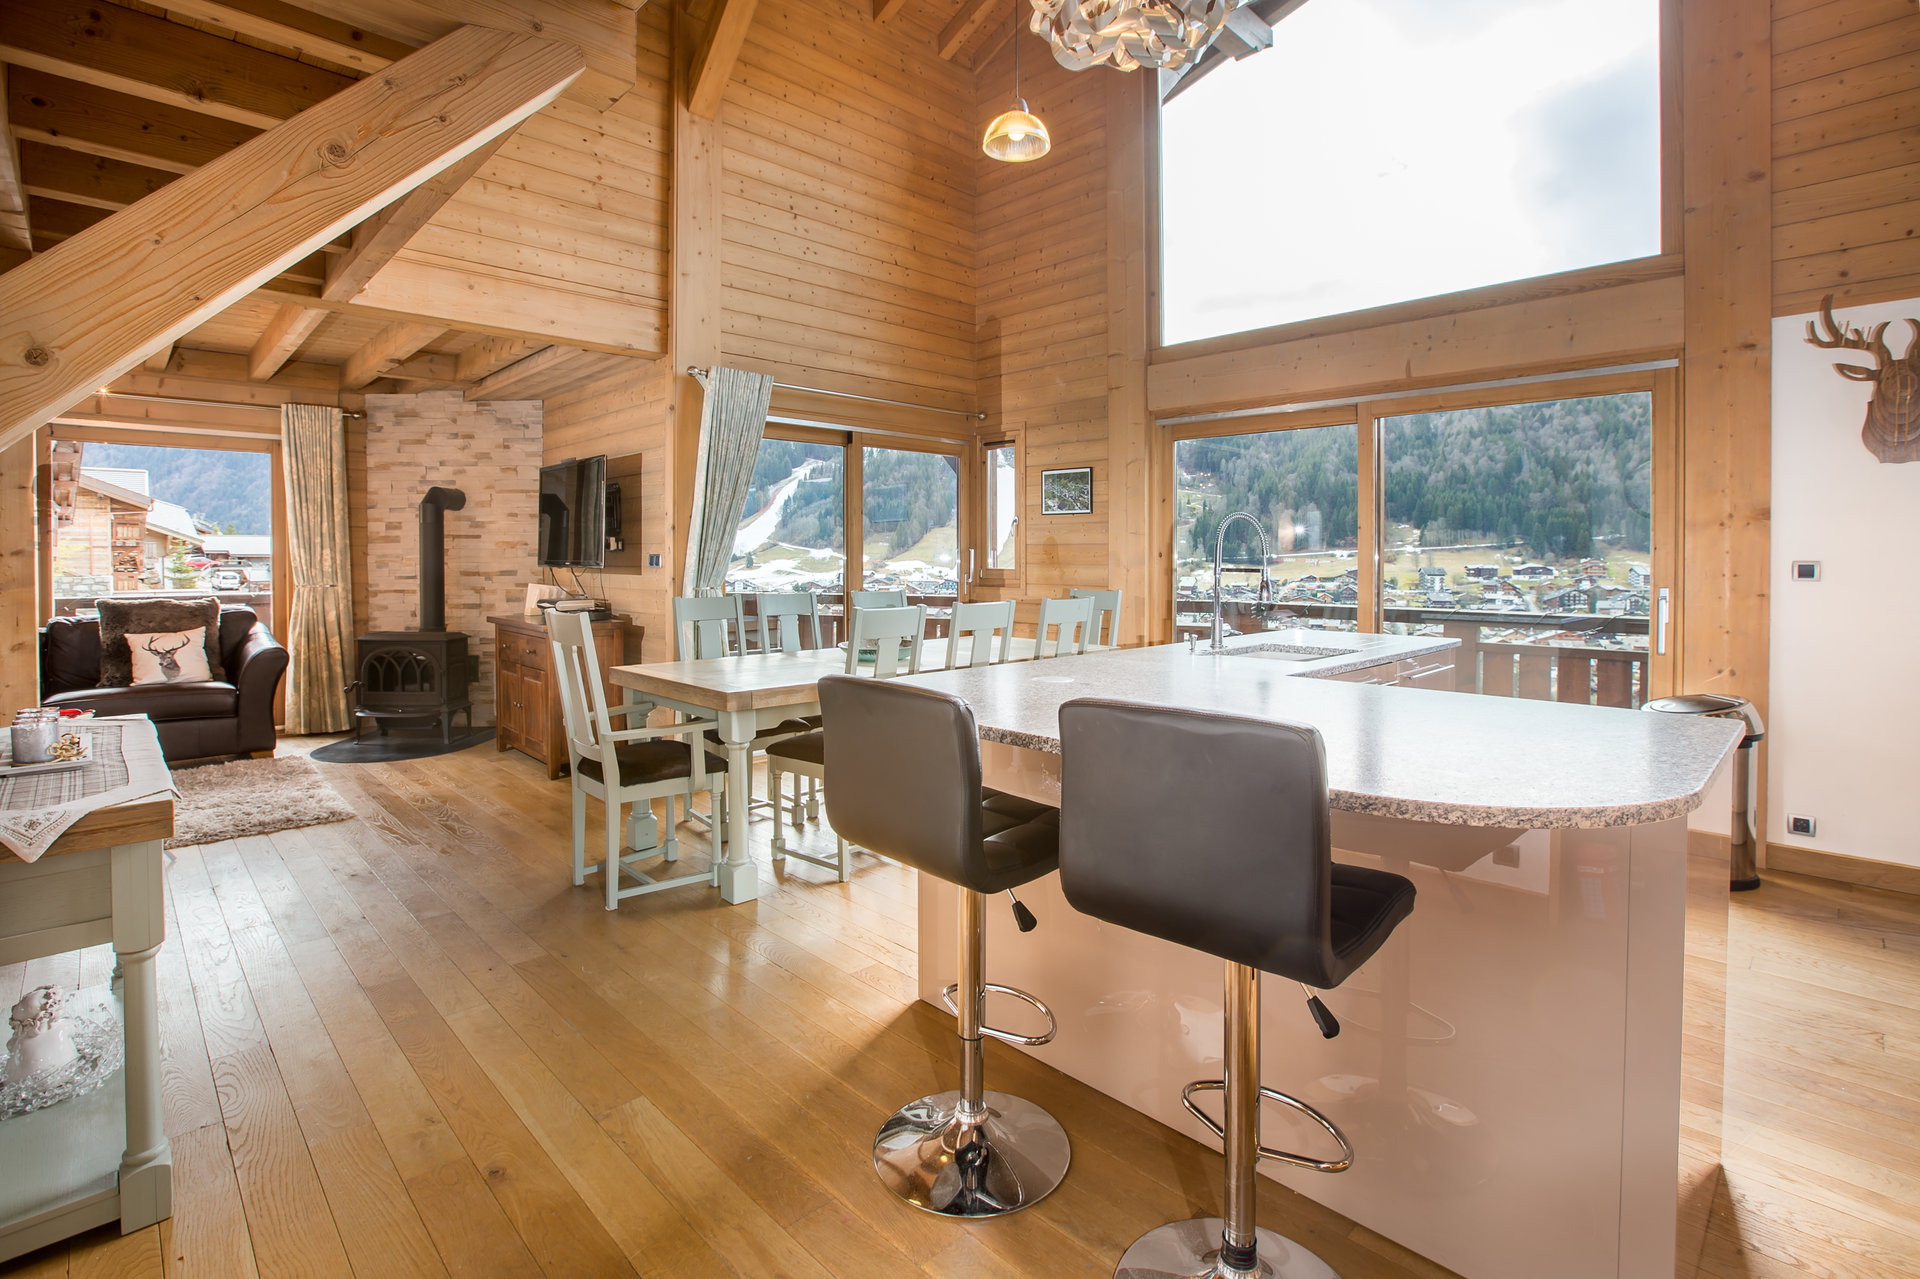 Chalet BOUTON D'OR Accommodation in Morzine